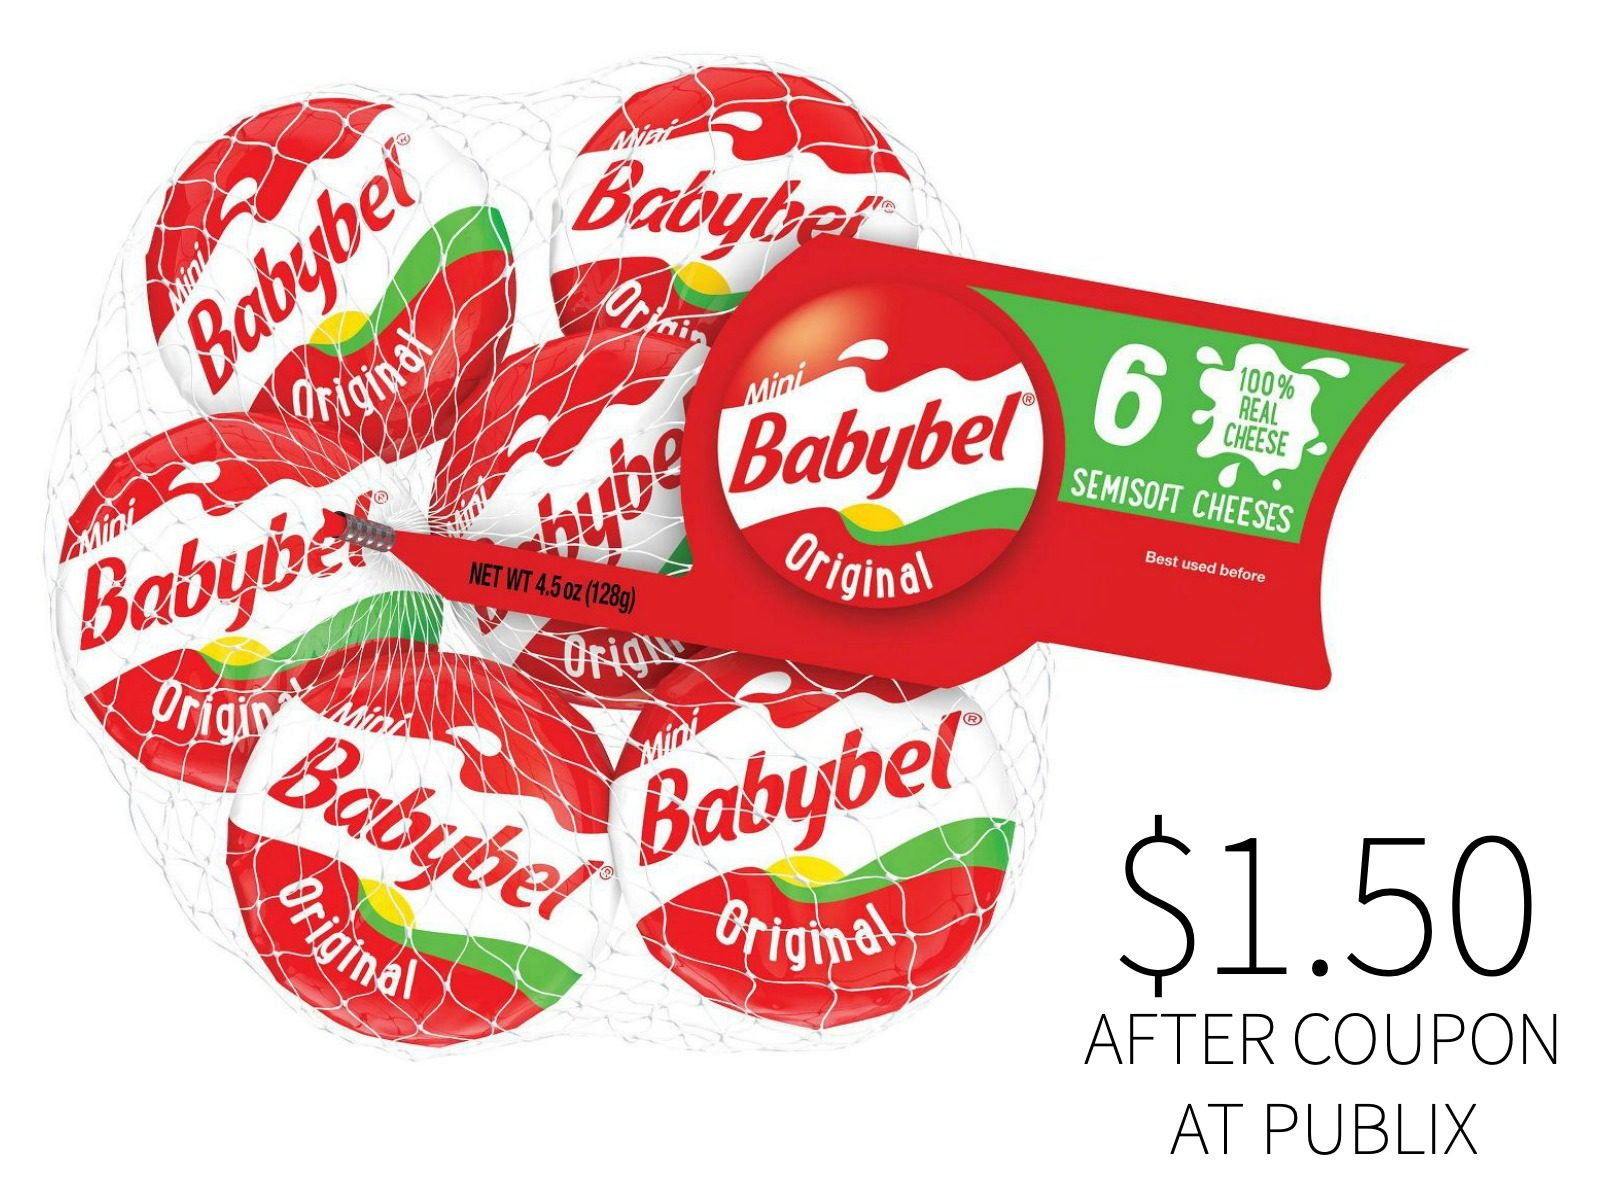 The Laughing Cow Mini Babybel Cheese Just $1.50 At Publix on I Heart Publix